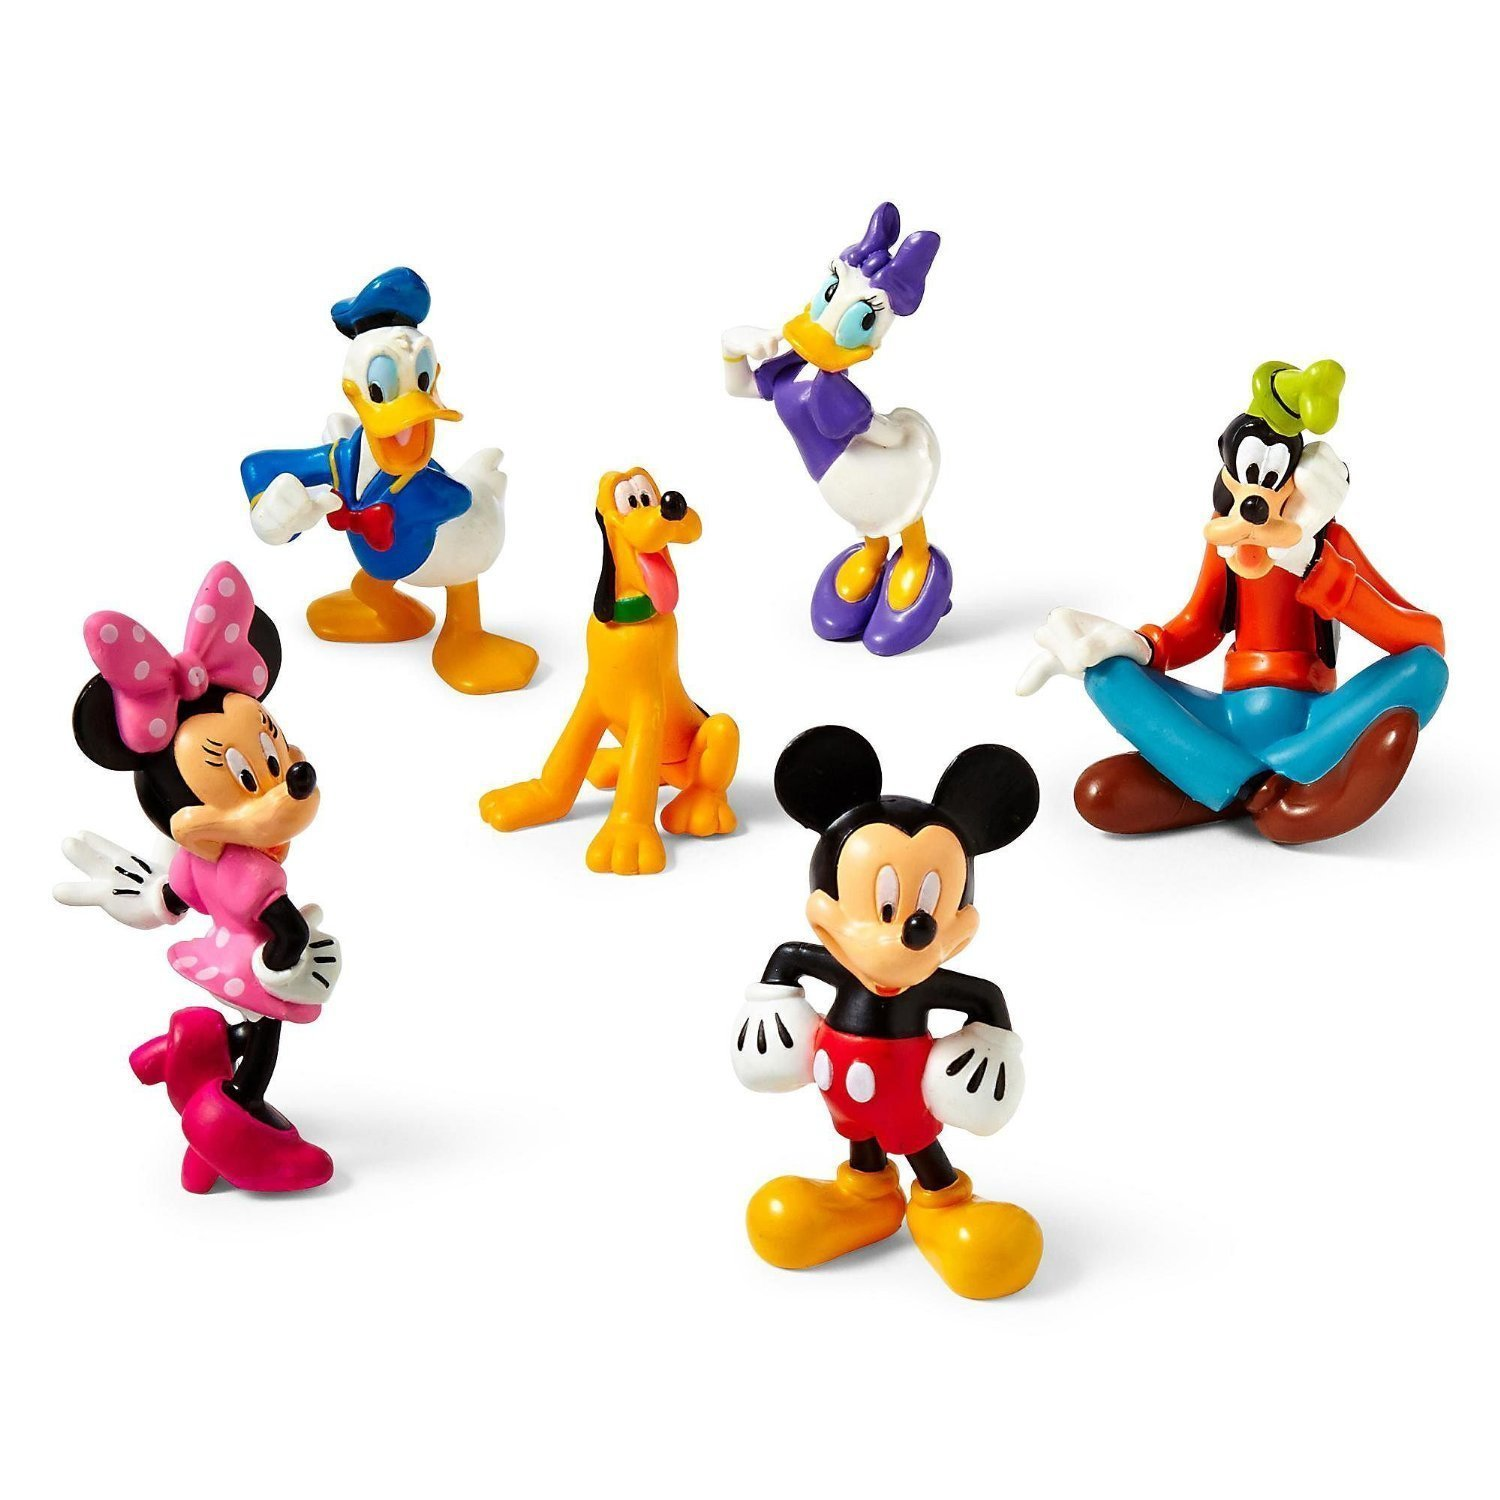 Disney Mickey Mouse Clubhouse Figure Play Set 6 Pc